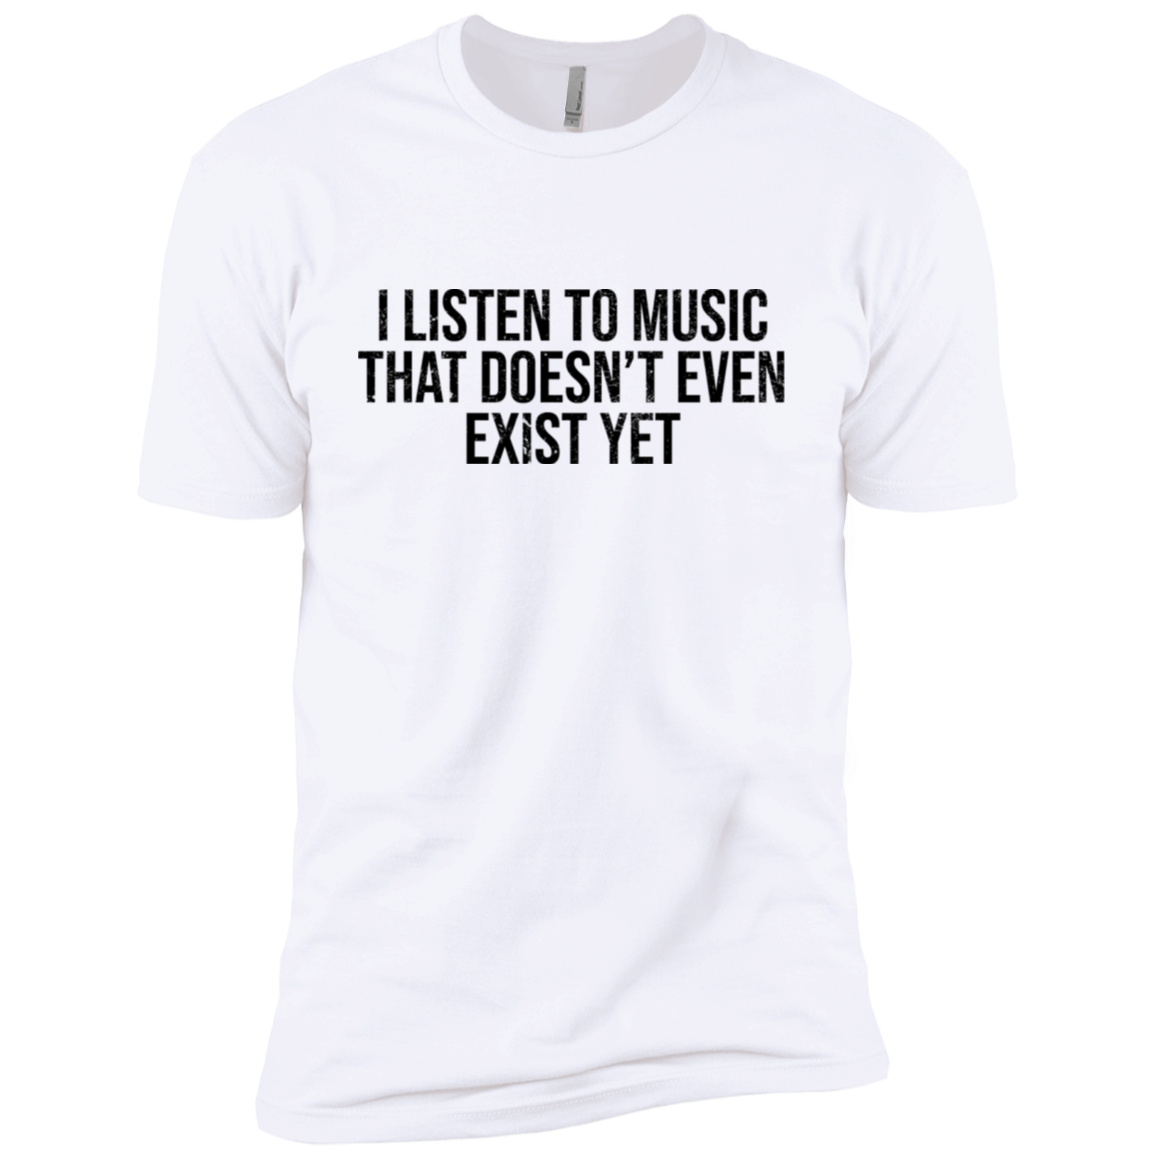 I Listen To Music That Doesn't Exist Yet Men's Classic Tee